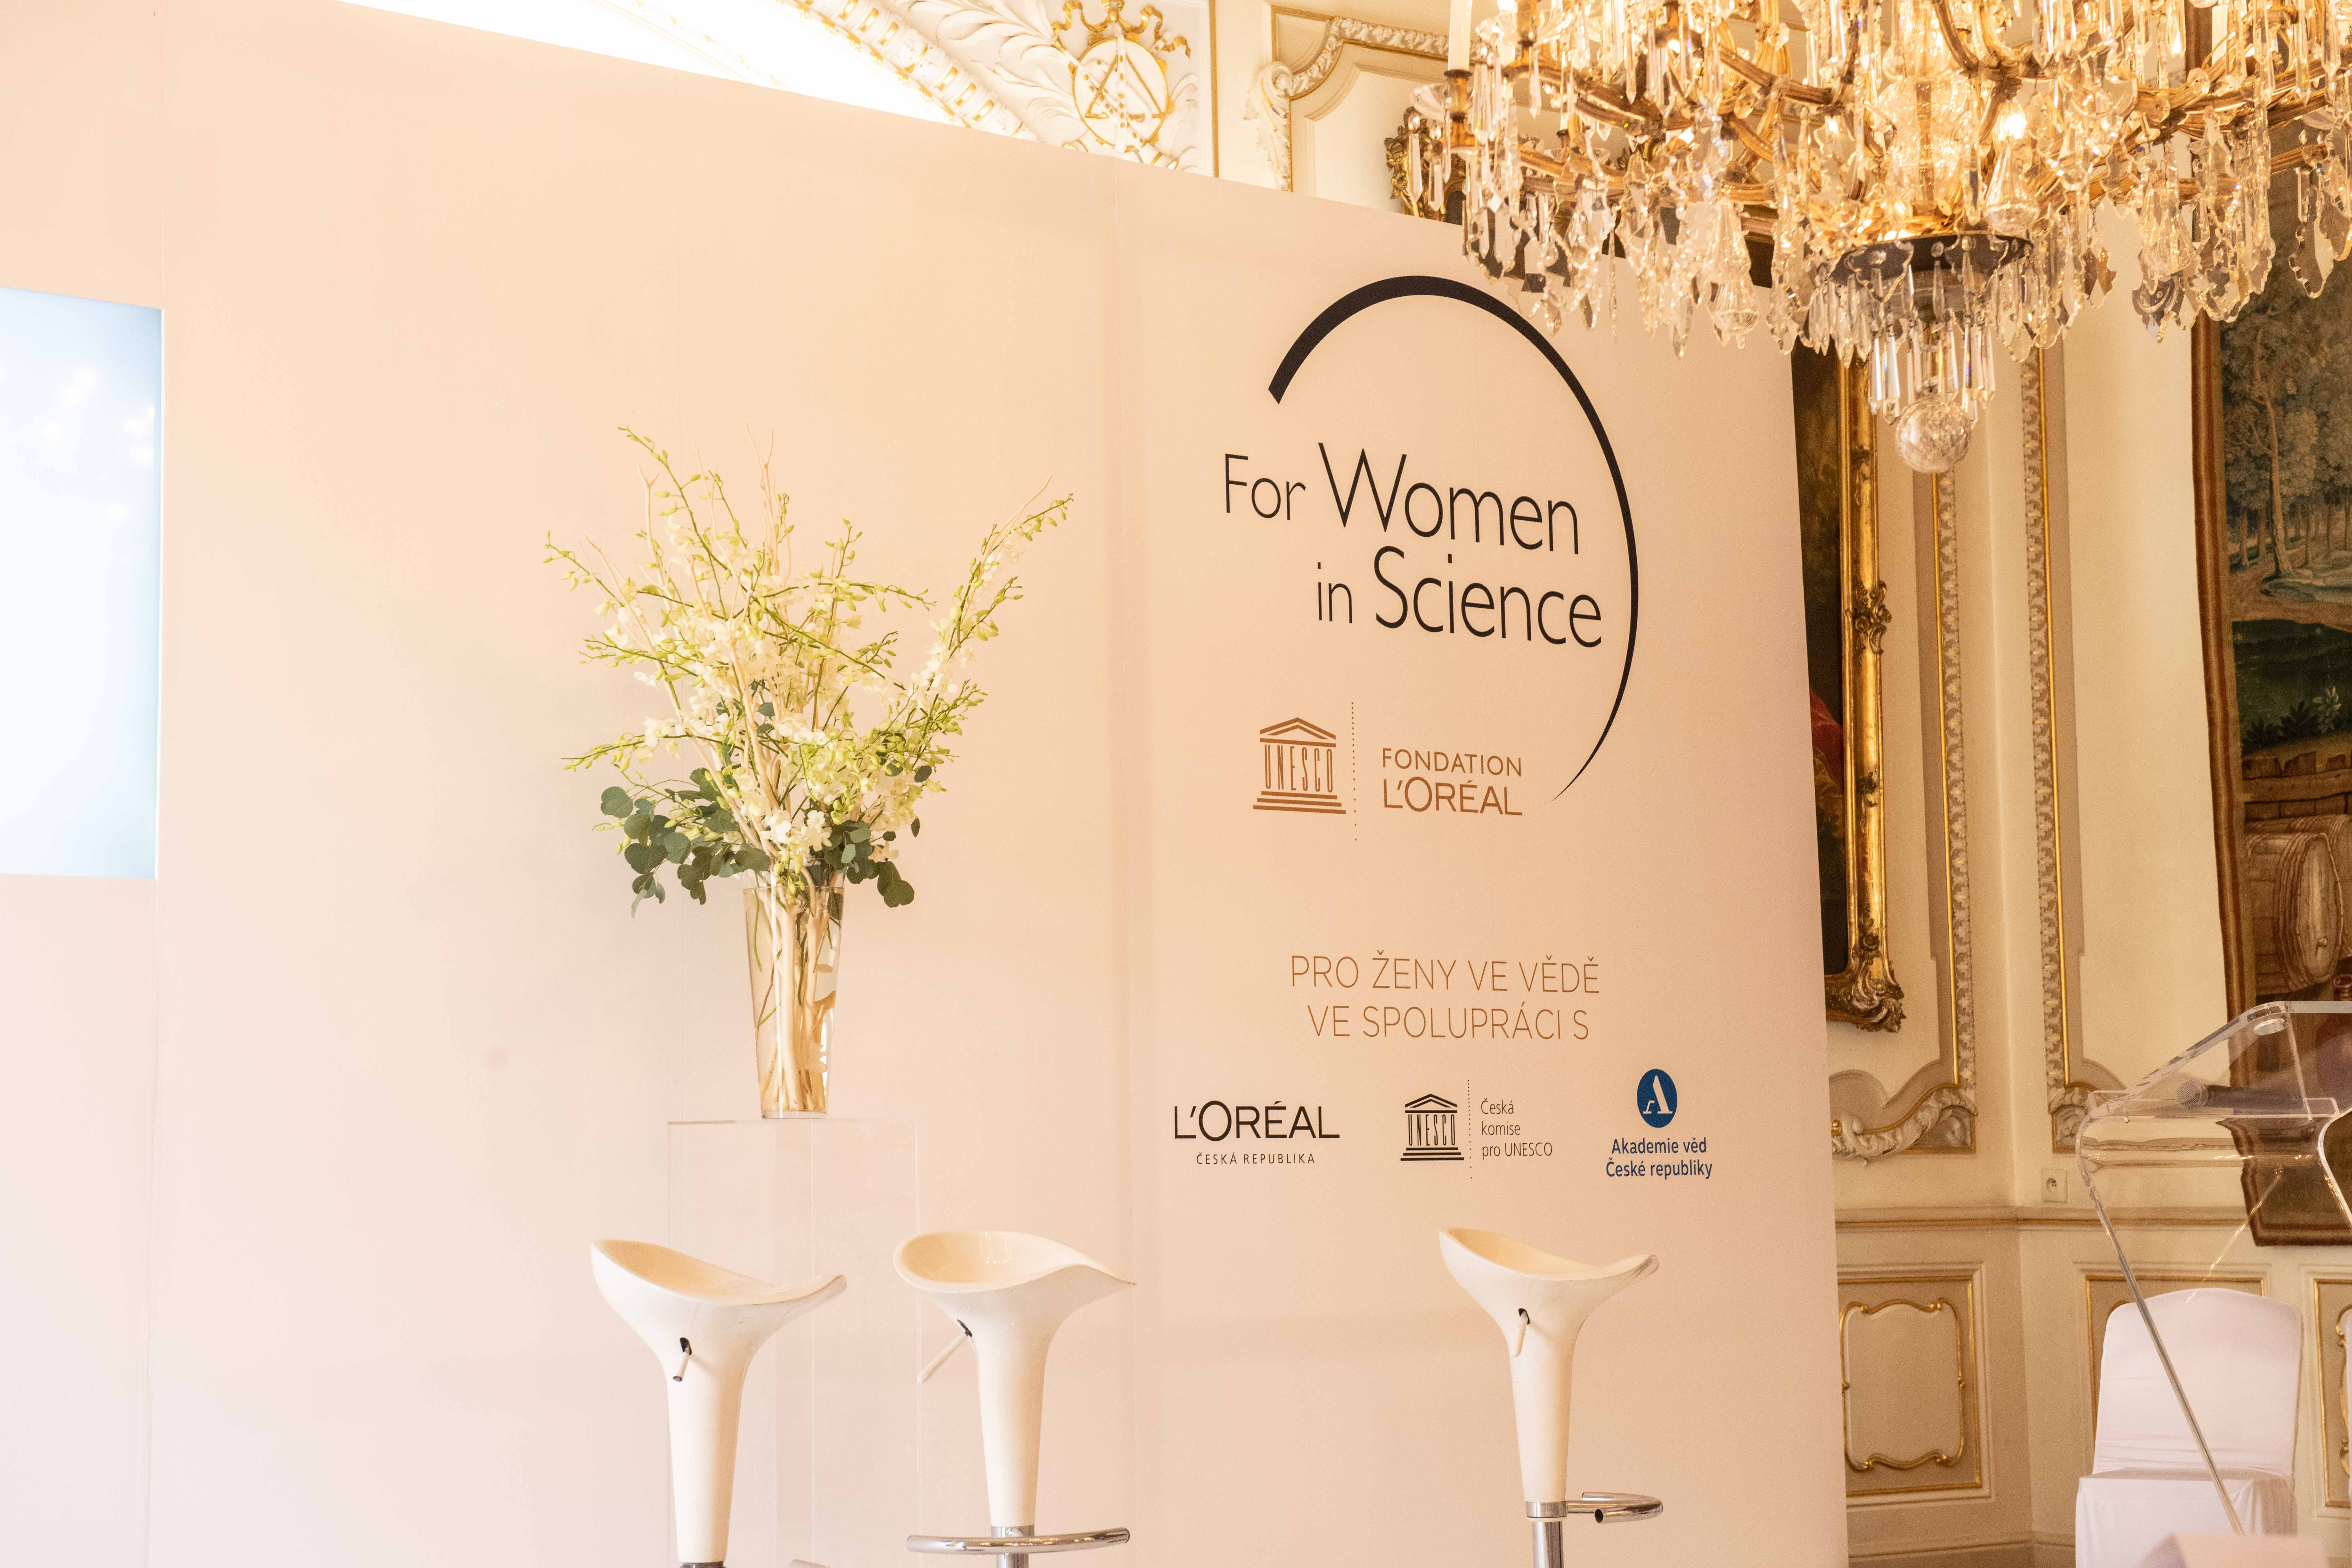 L'Oréal Czech Republic launches 15th edition of L'ORÉAL-UNESCO For Women in Science, Czech Republic - talent program